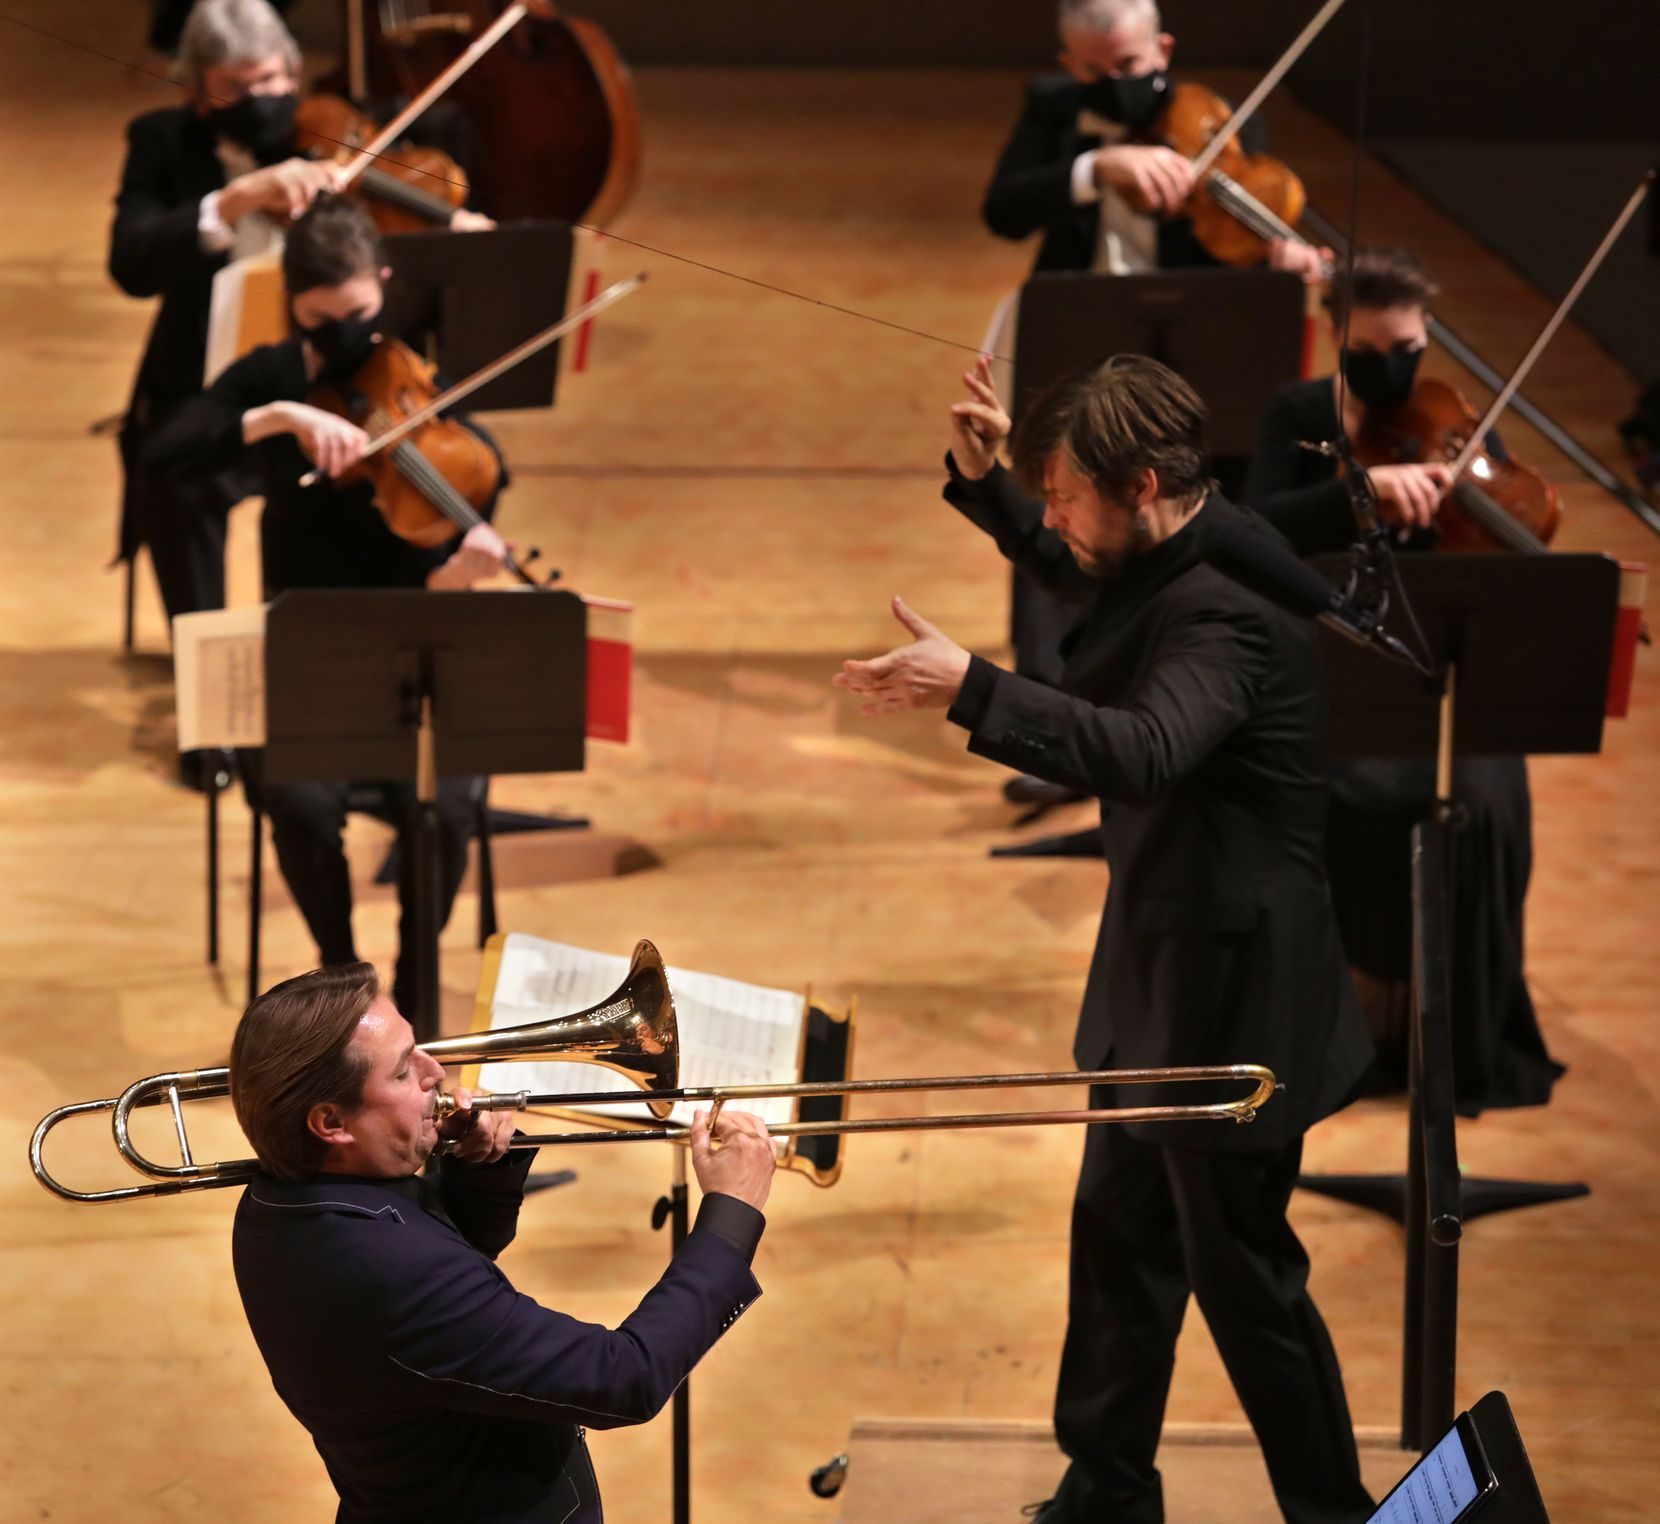 Jörgen van Rijen plays trombone as Juraj Valčuha conducts during a Dallas Symphony Orchestra performance at the Morton H. Meyerson Symphony Center on Oct. 1.